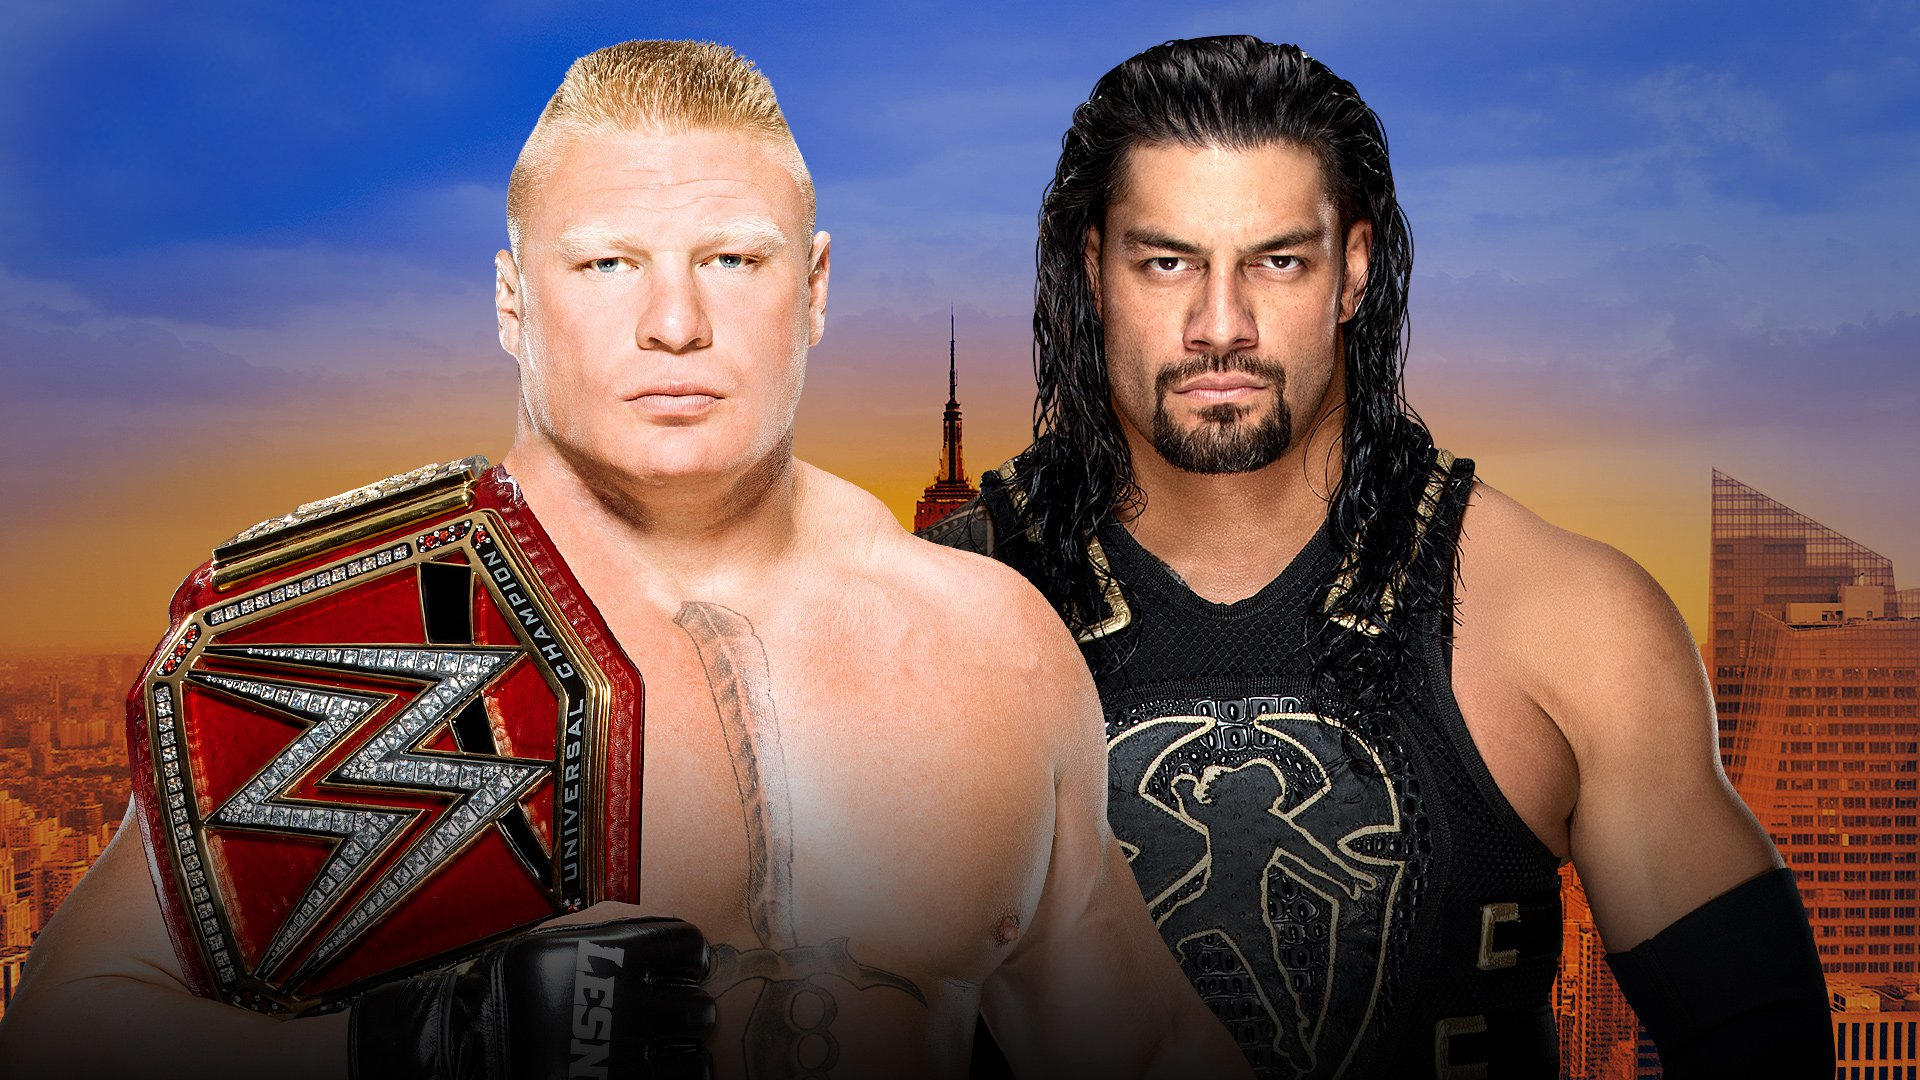 Main Event SummerSlam